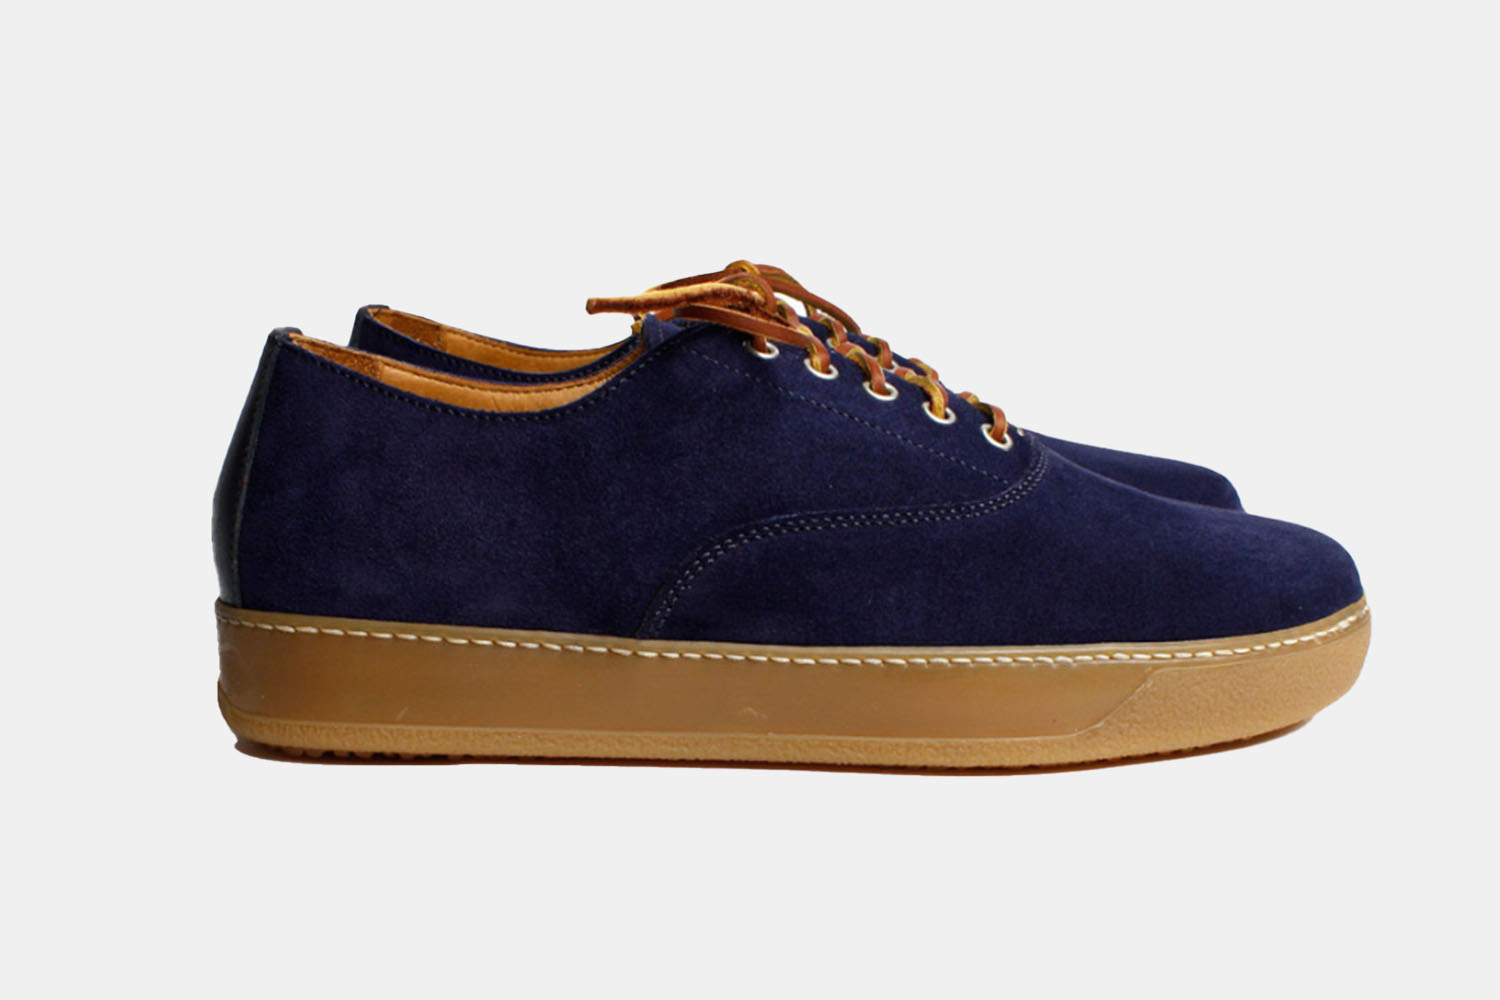 A navy suede sneaker with a gum sole.